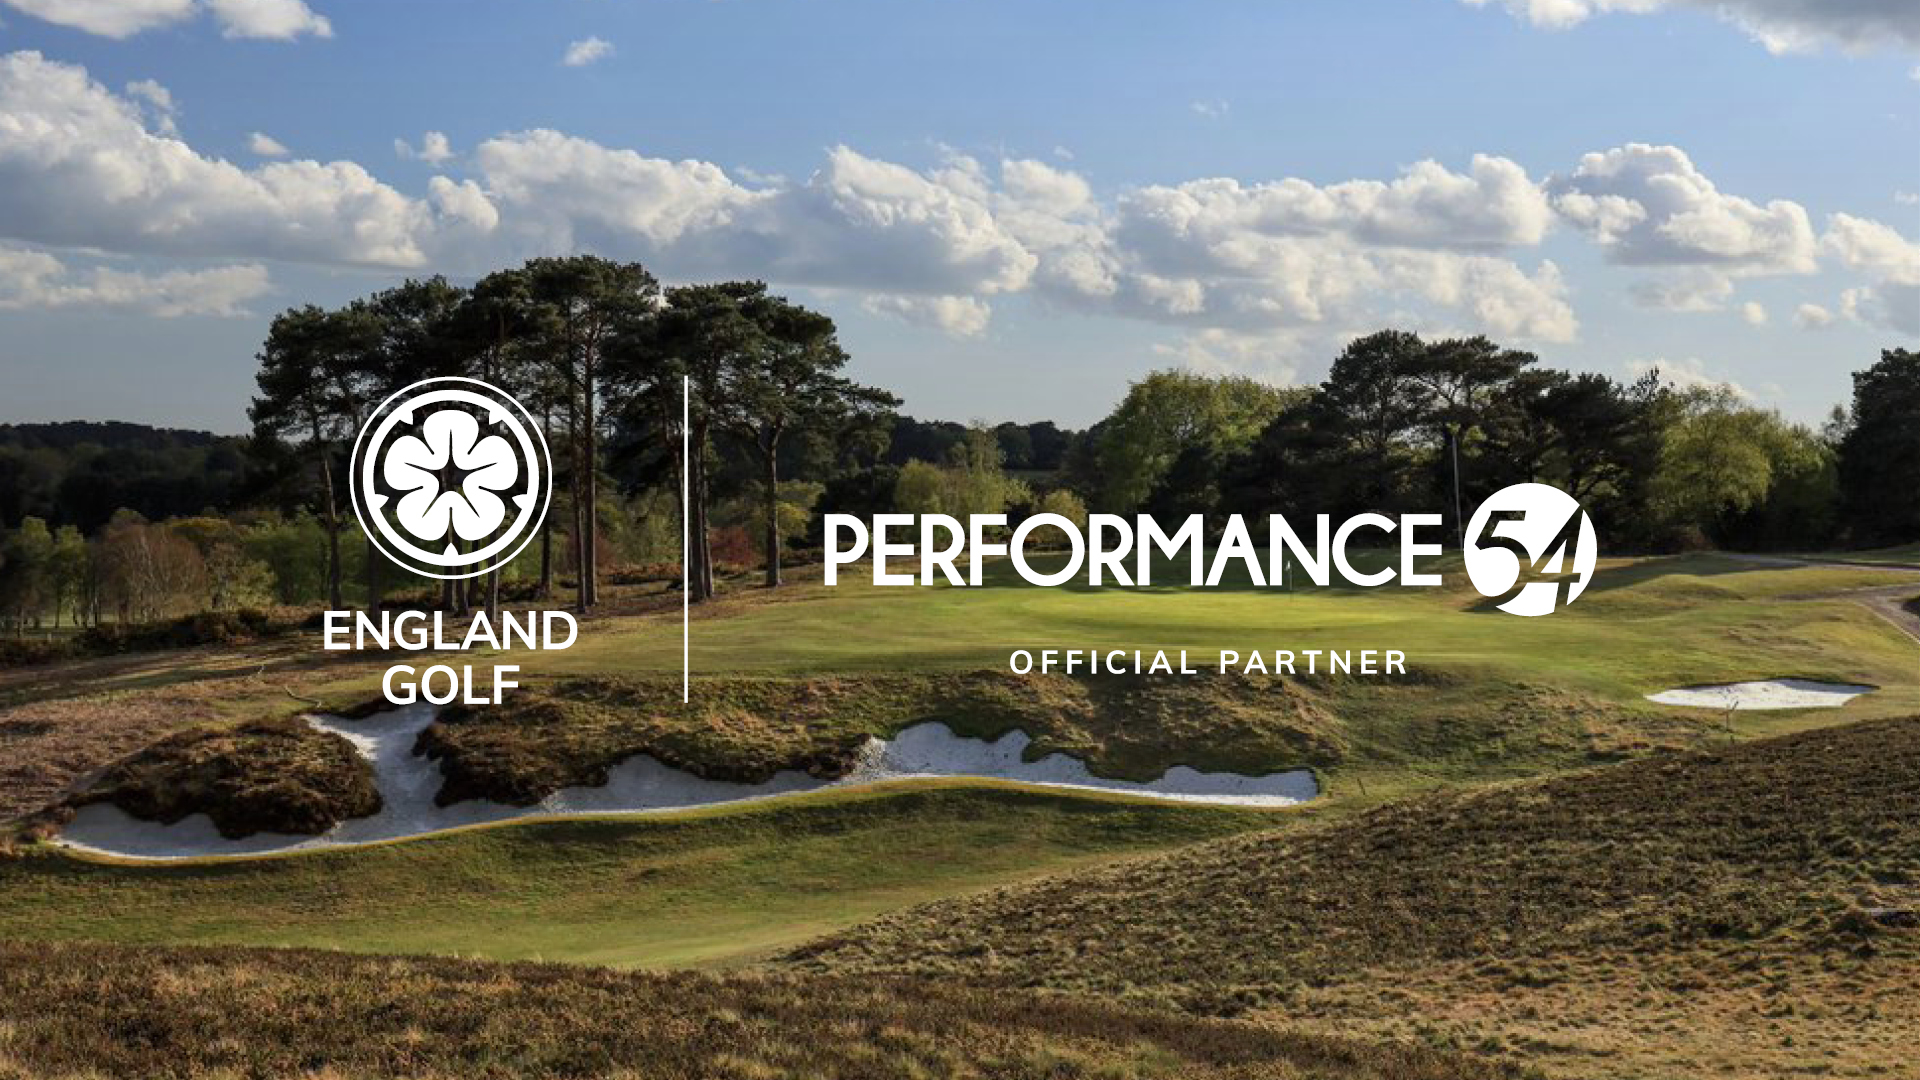 England Golf welcomes Performance54 as official partner